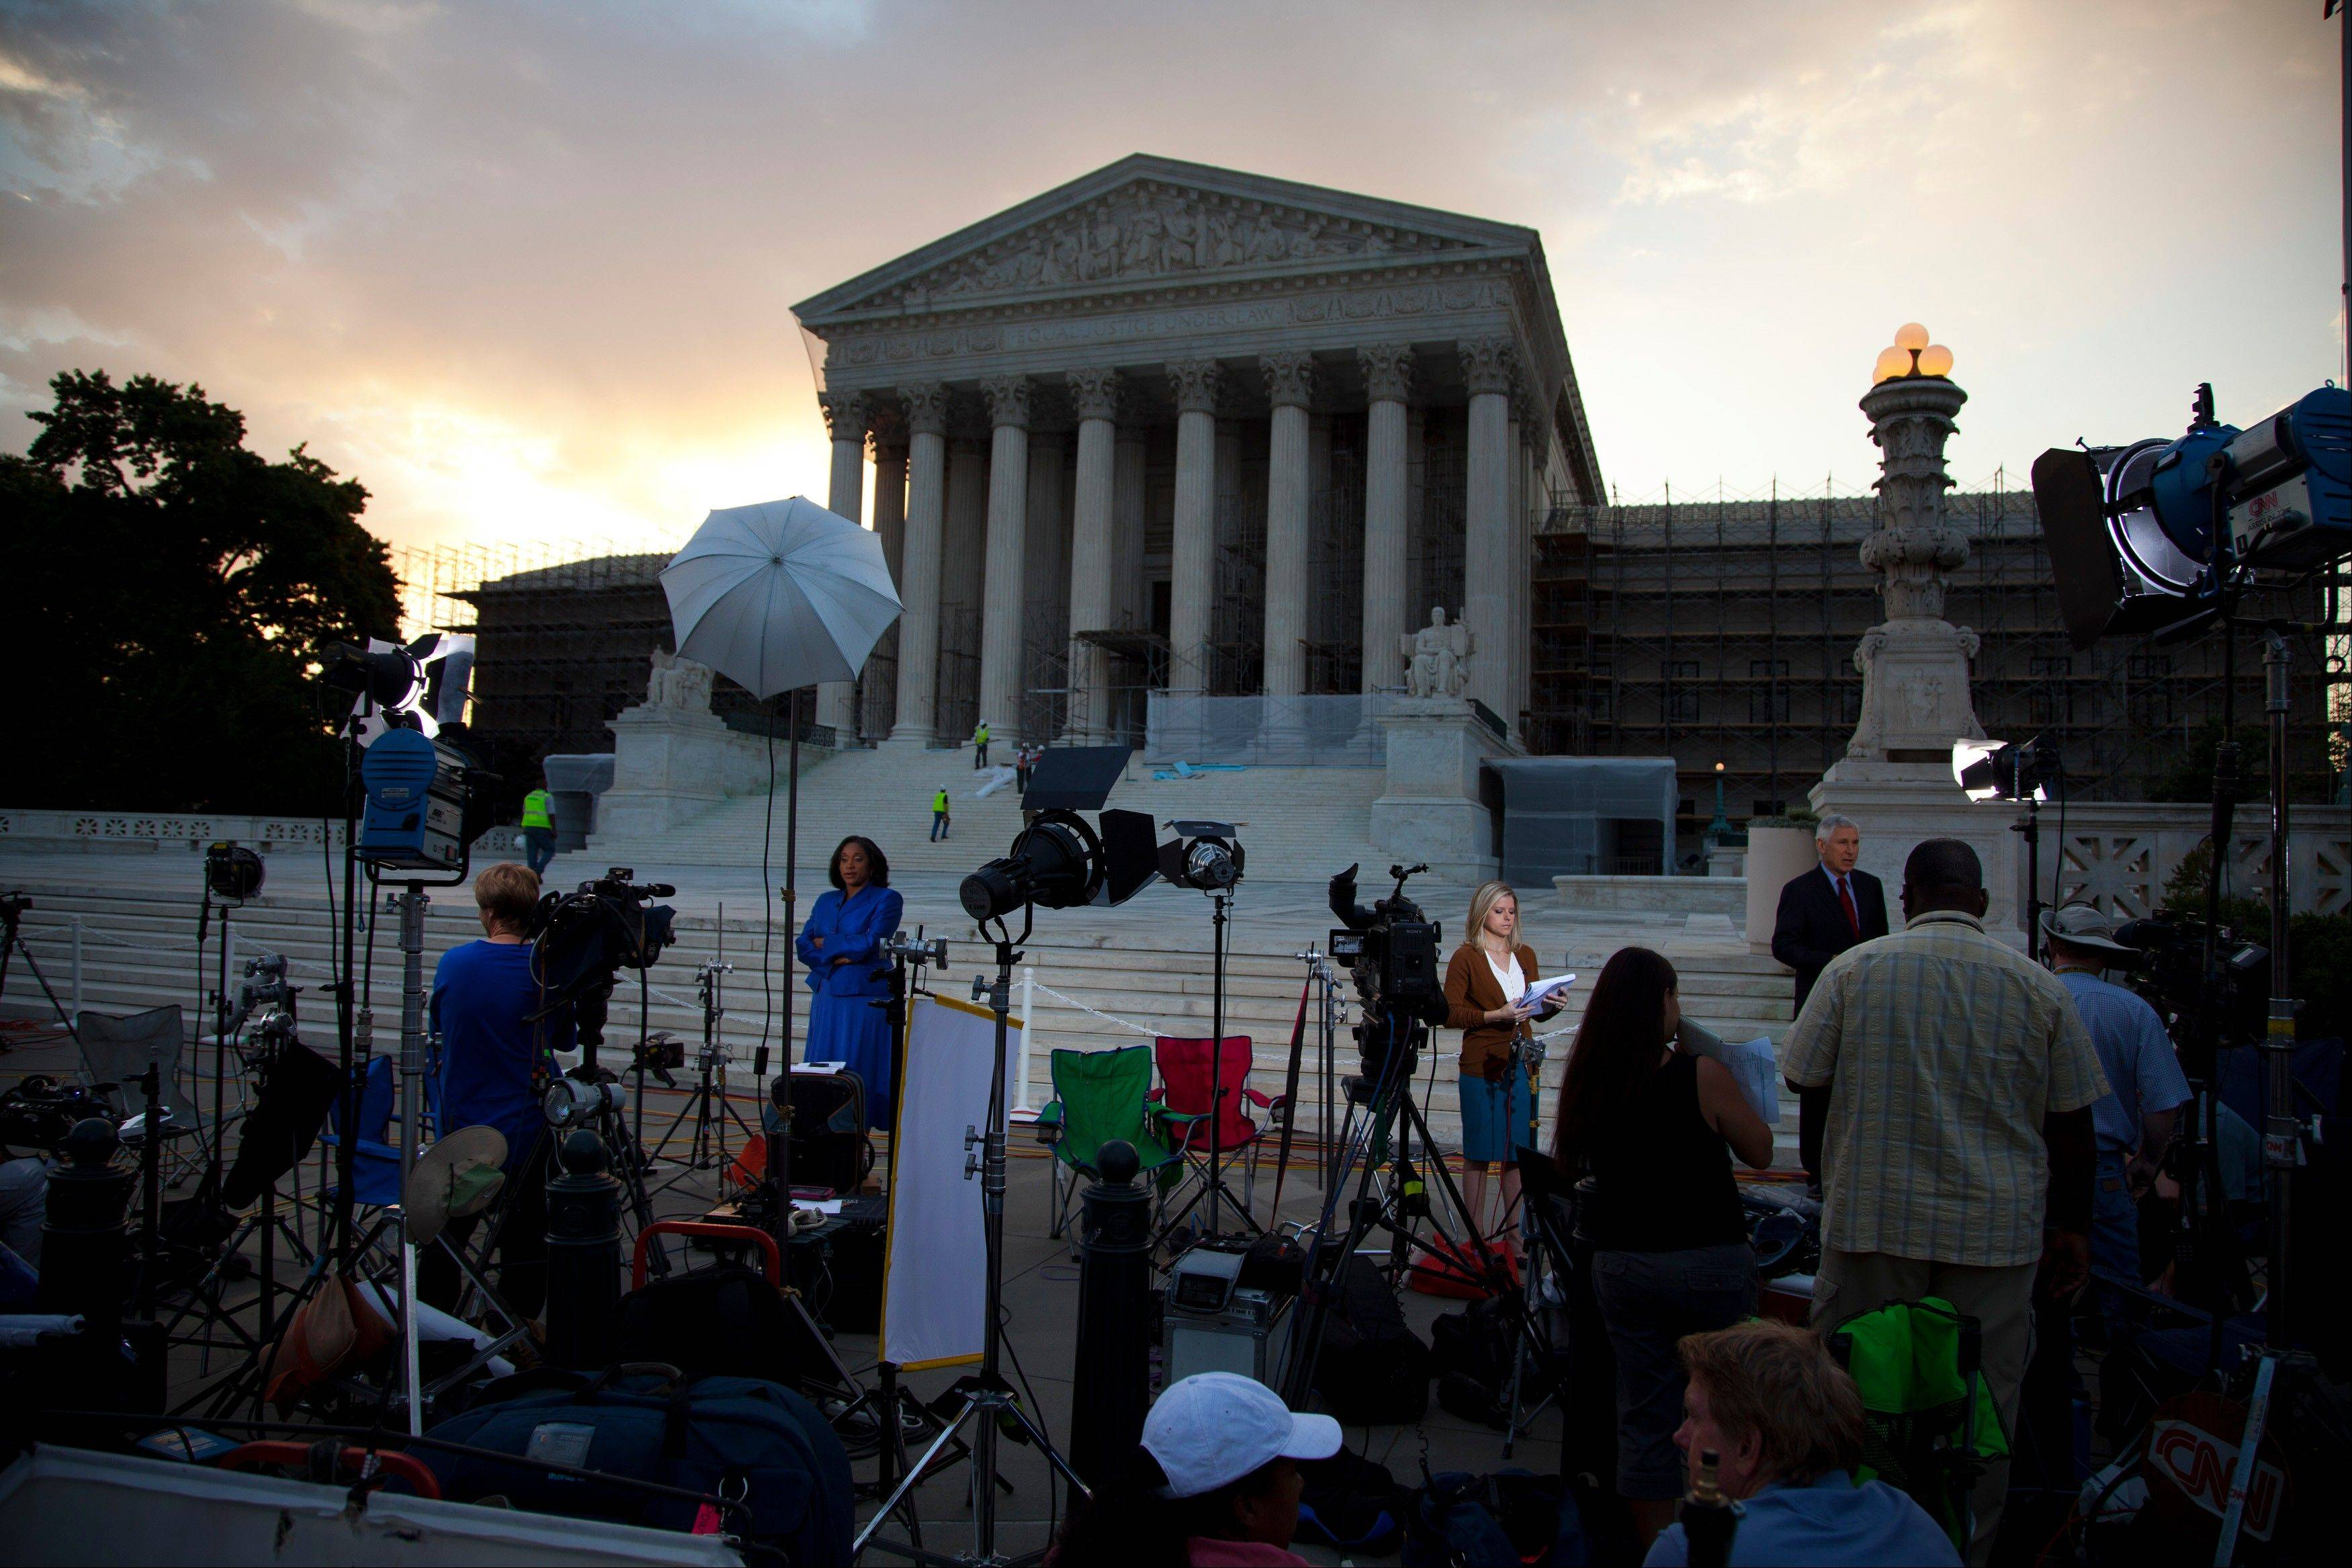 Journalists wait outside the Supreme Court for a landmark decision on health care on Thursday, June 28, 2012 in Washington.